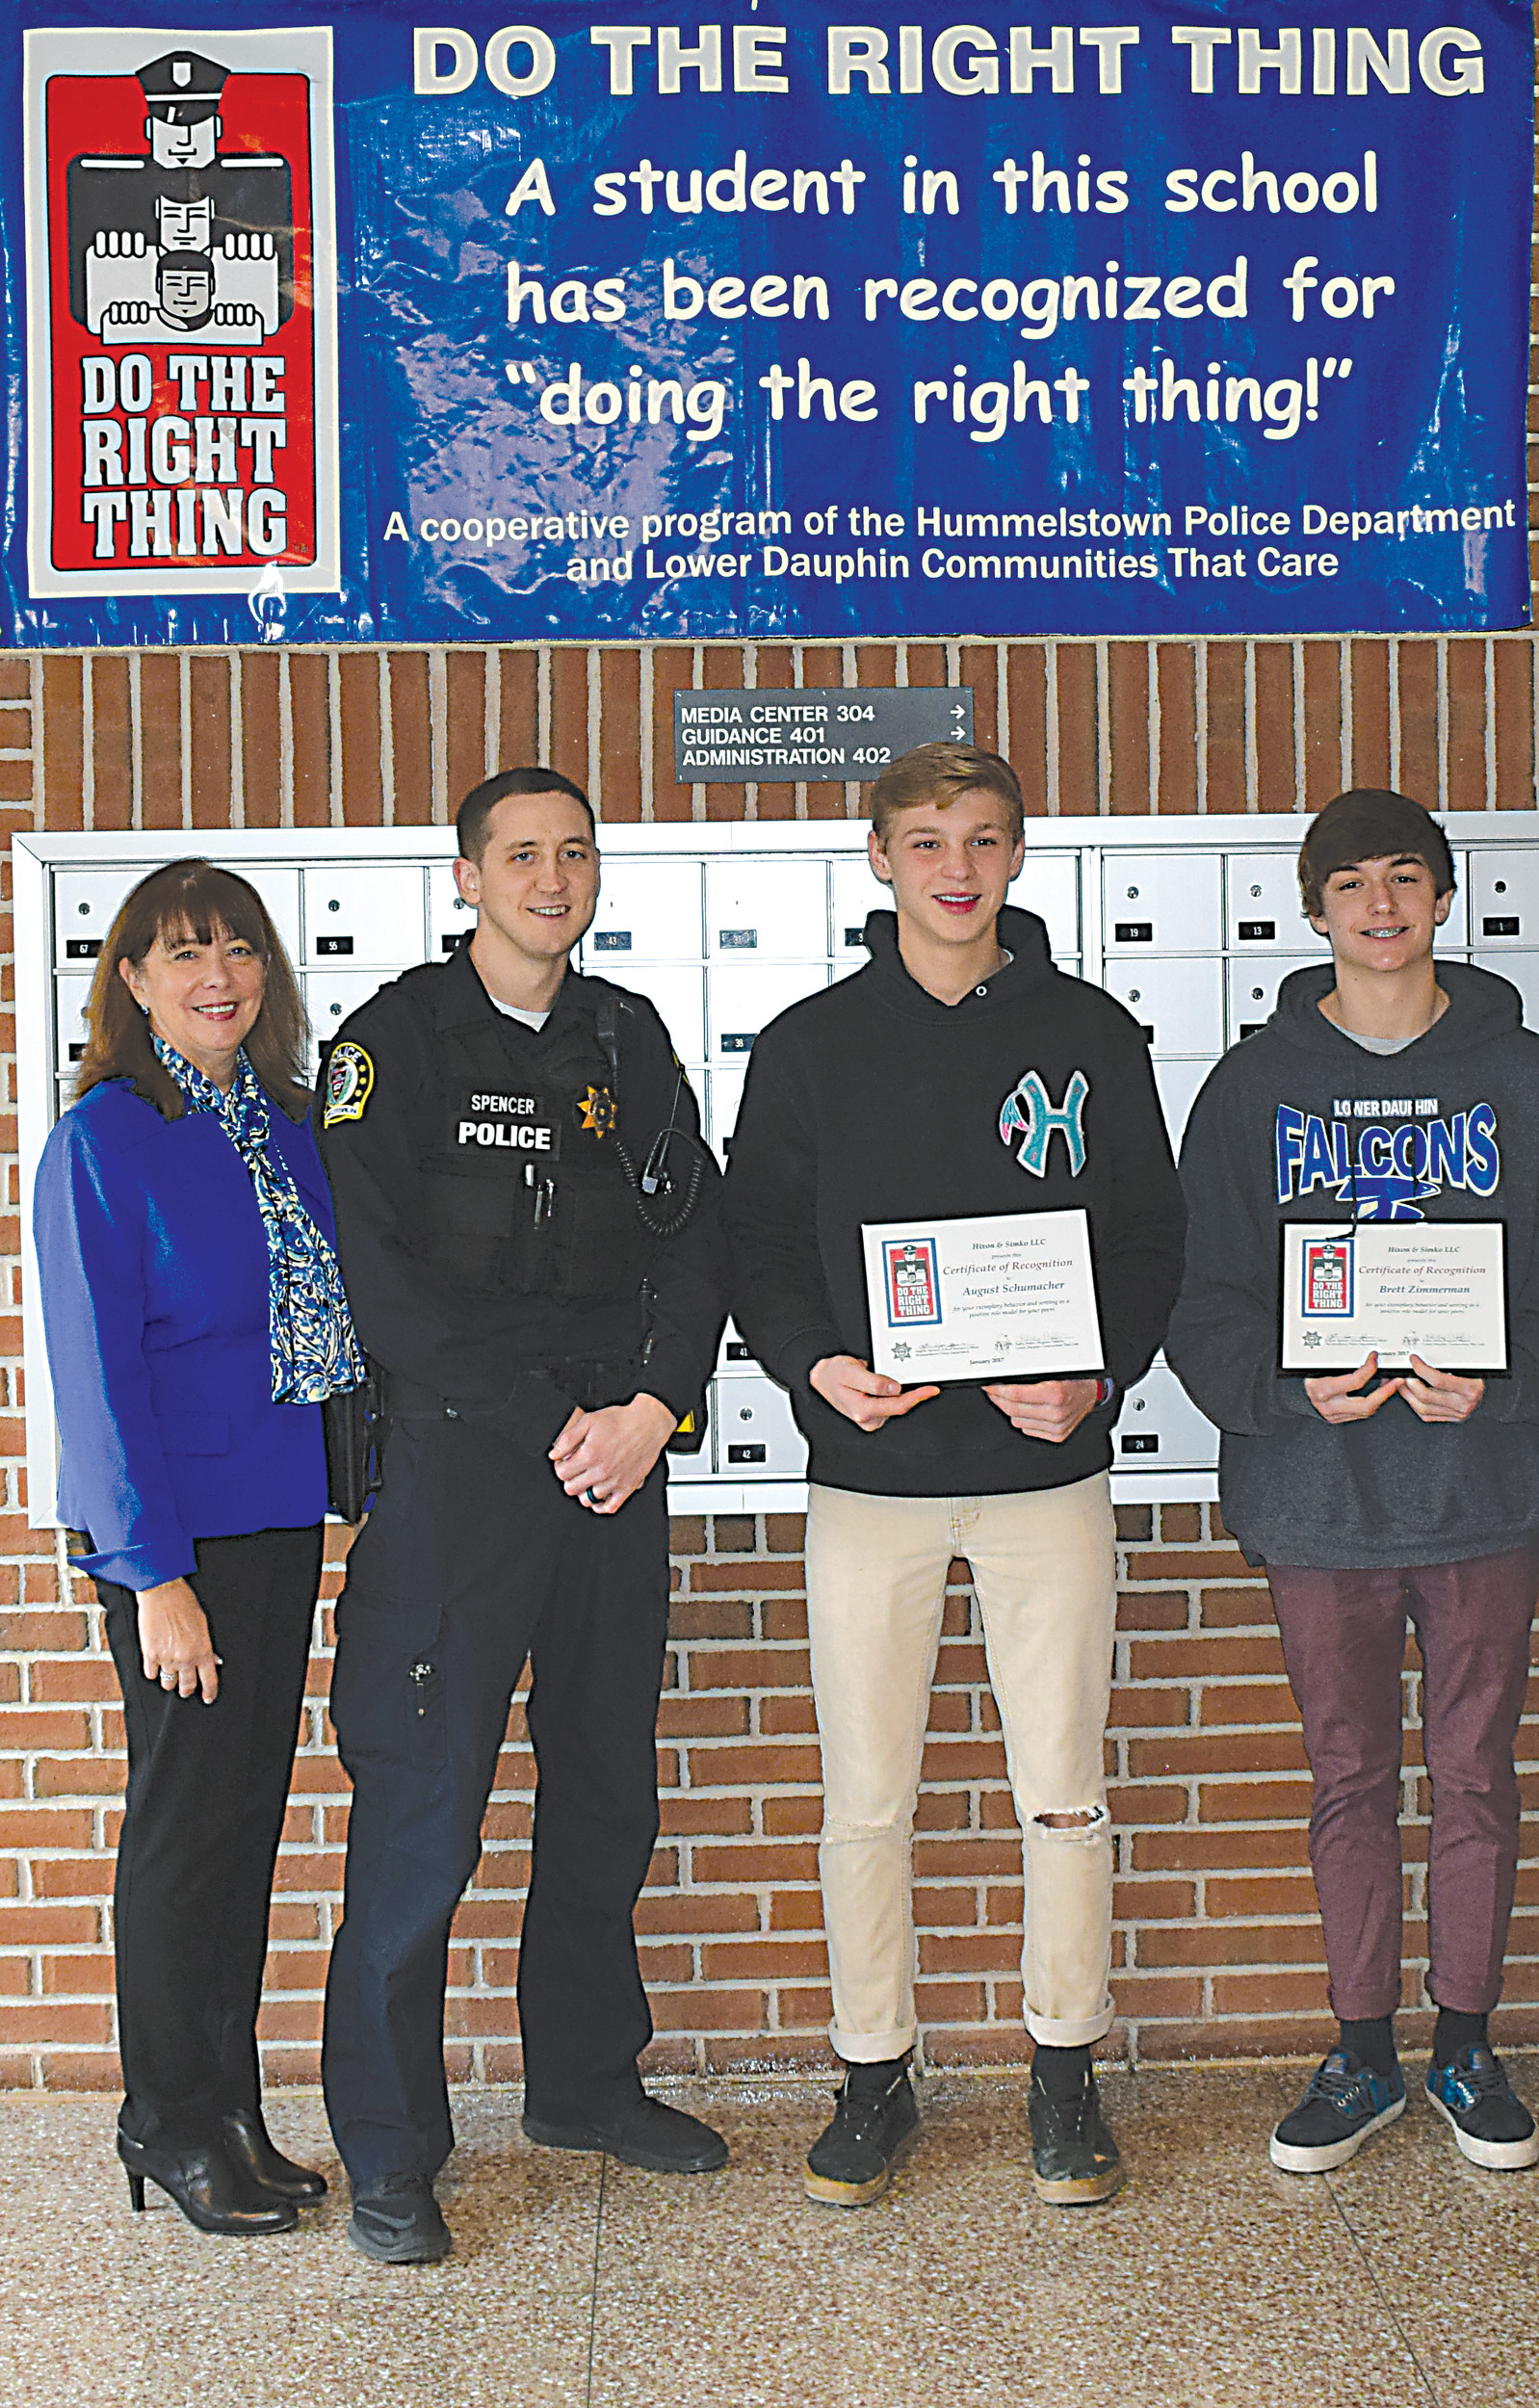 LD CTC's Kathy Peffer and SRO Eugene Spencer congratulate August Schumacher and Brett Zimmerman.